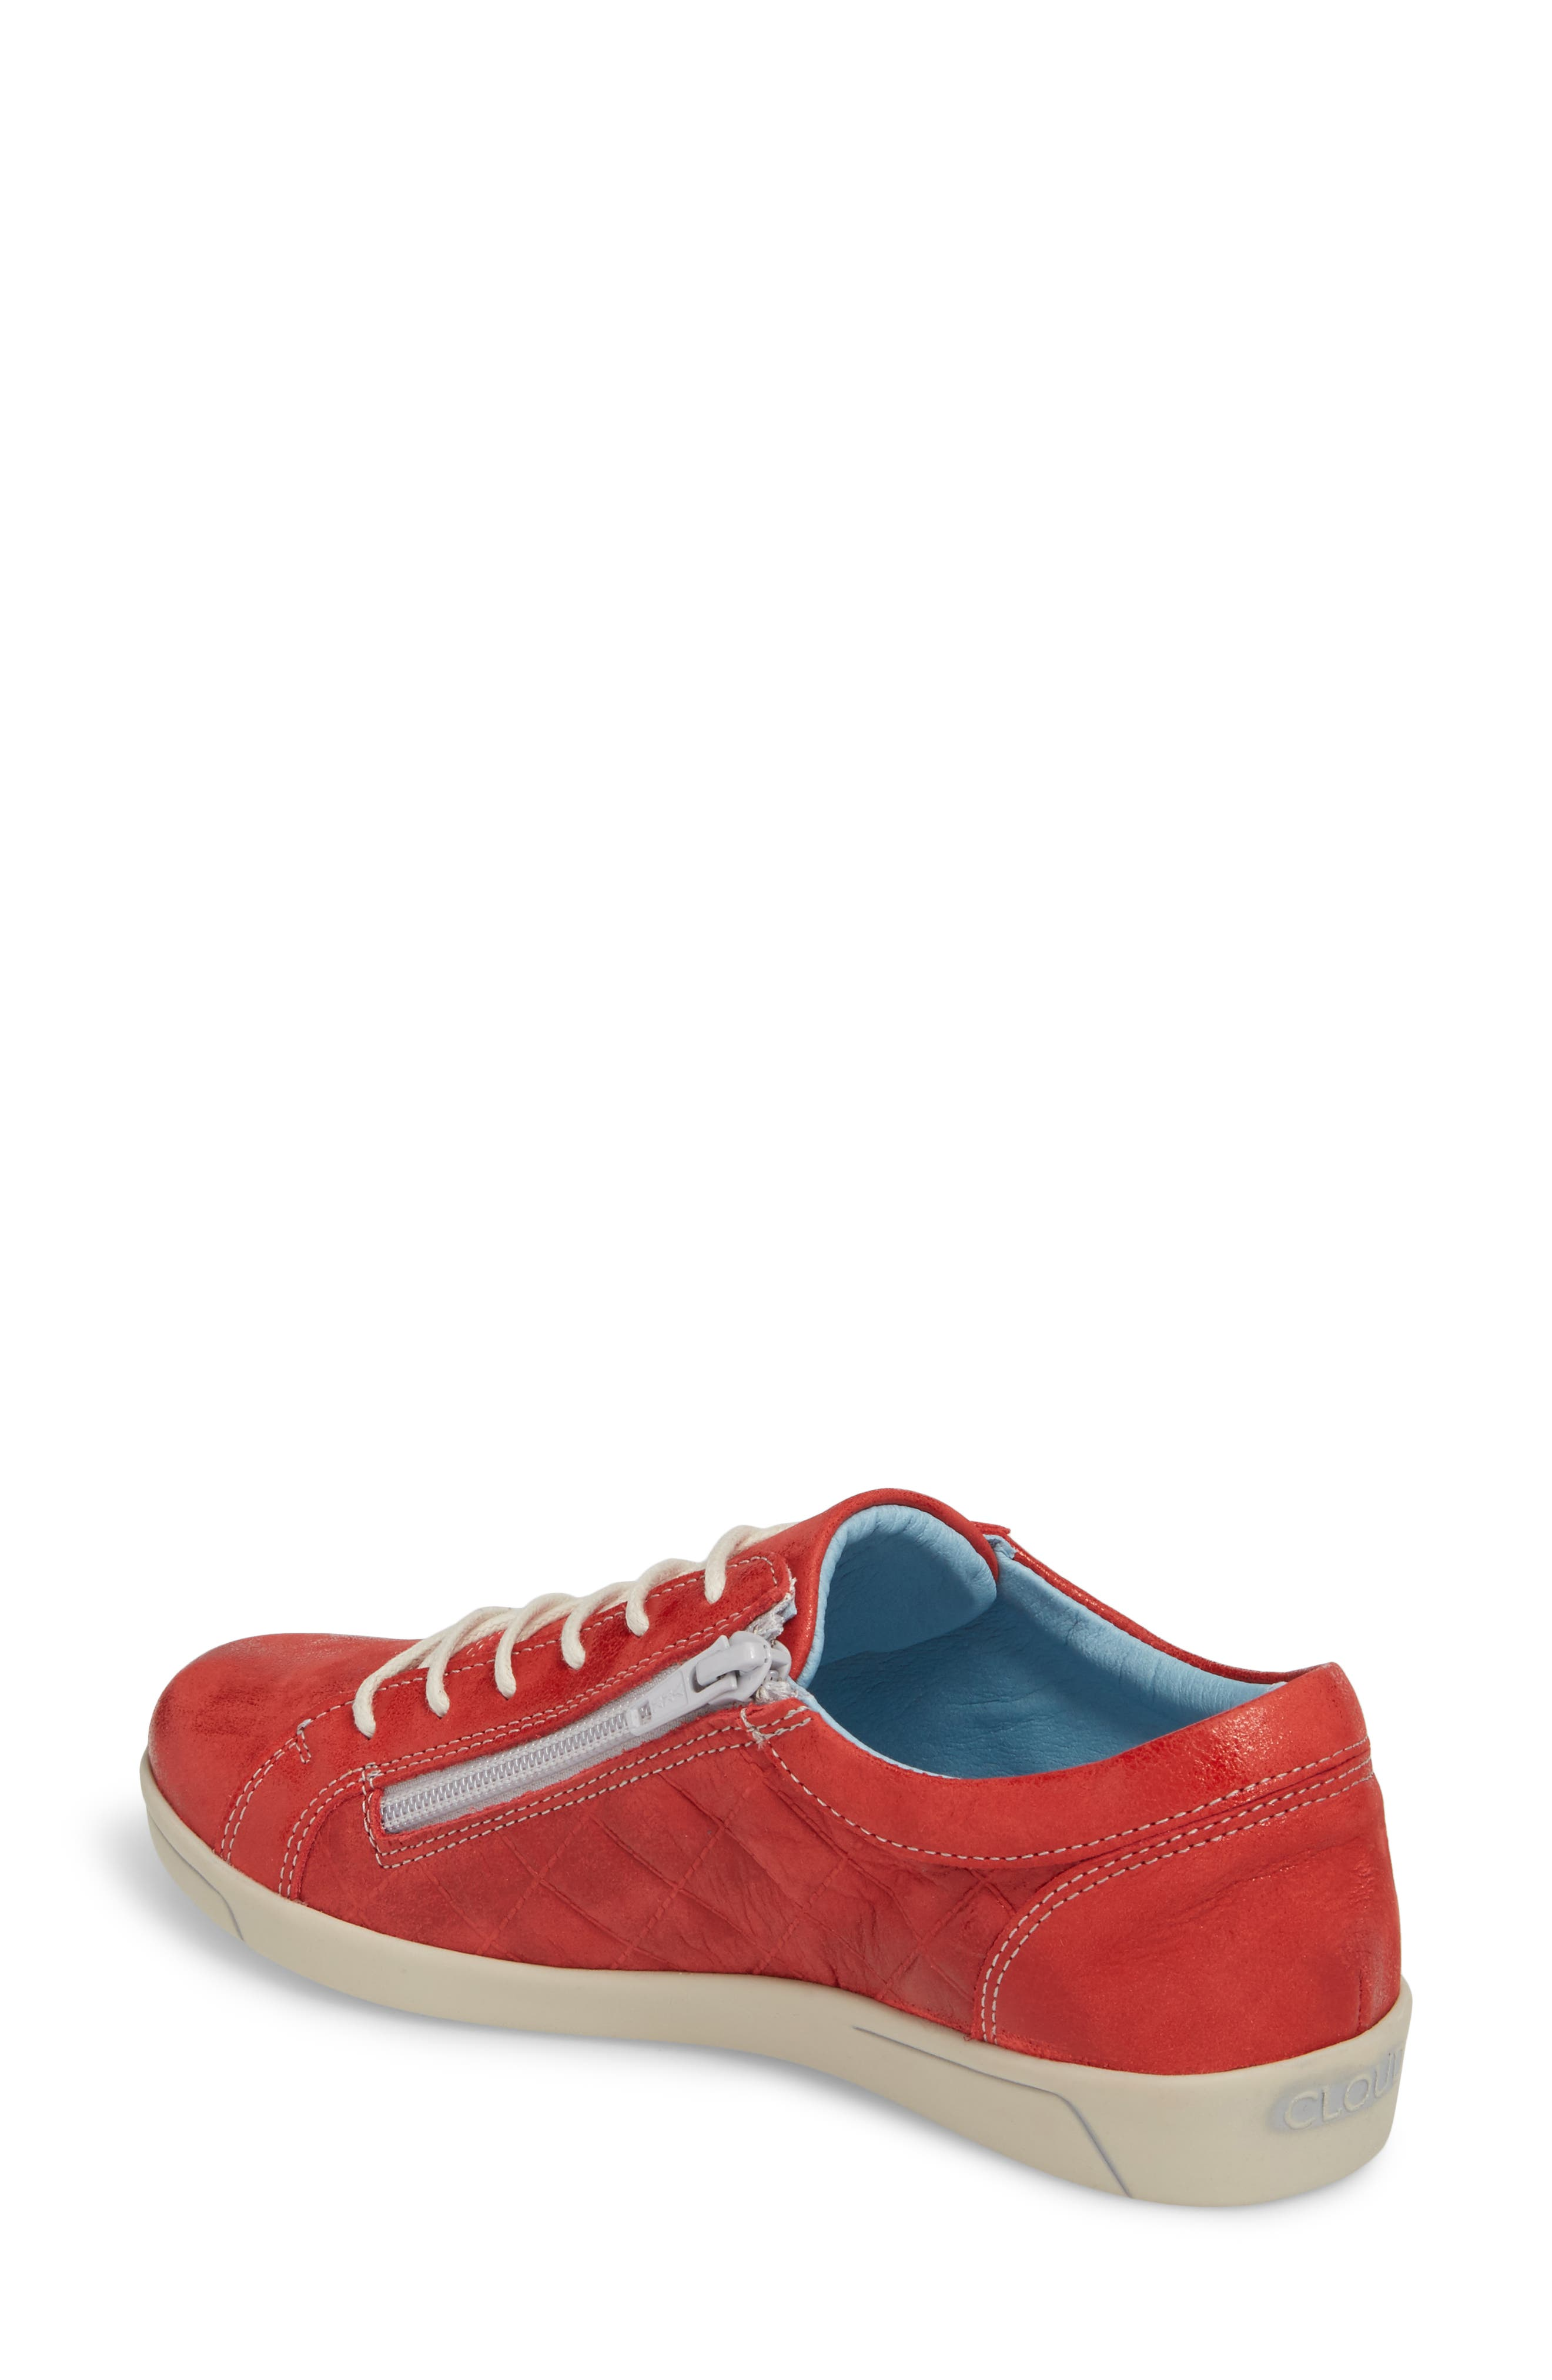 Alessia Sneaker,                             Alternate thumbnail 2, color,                             Red Stinger Leather